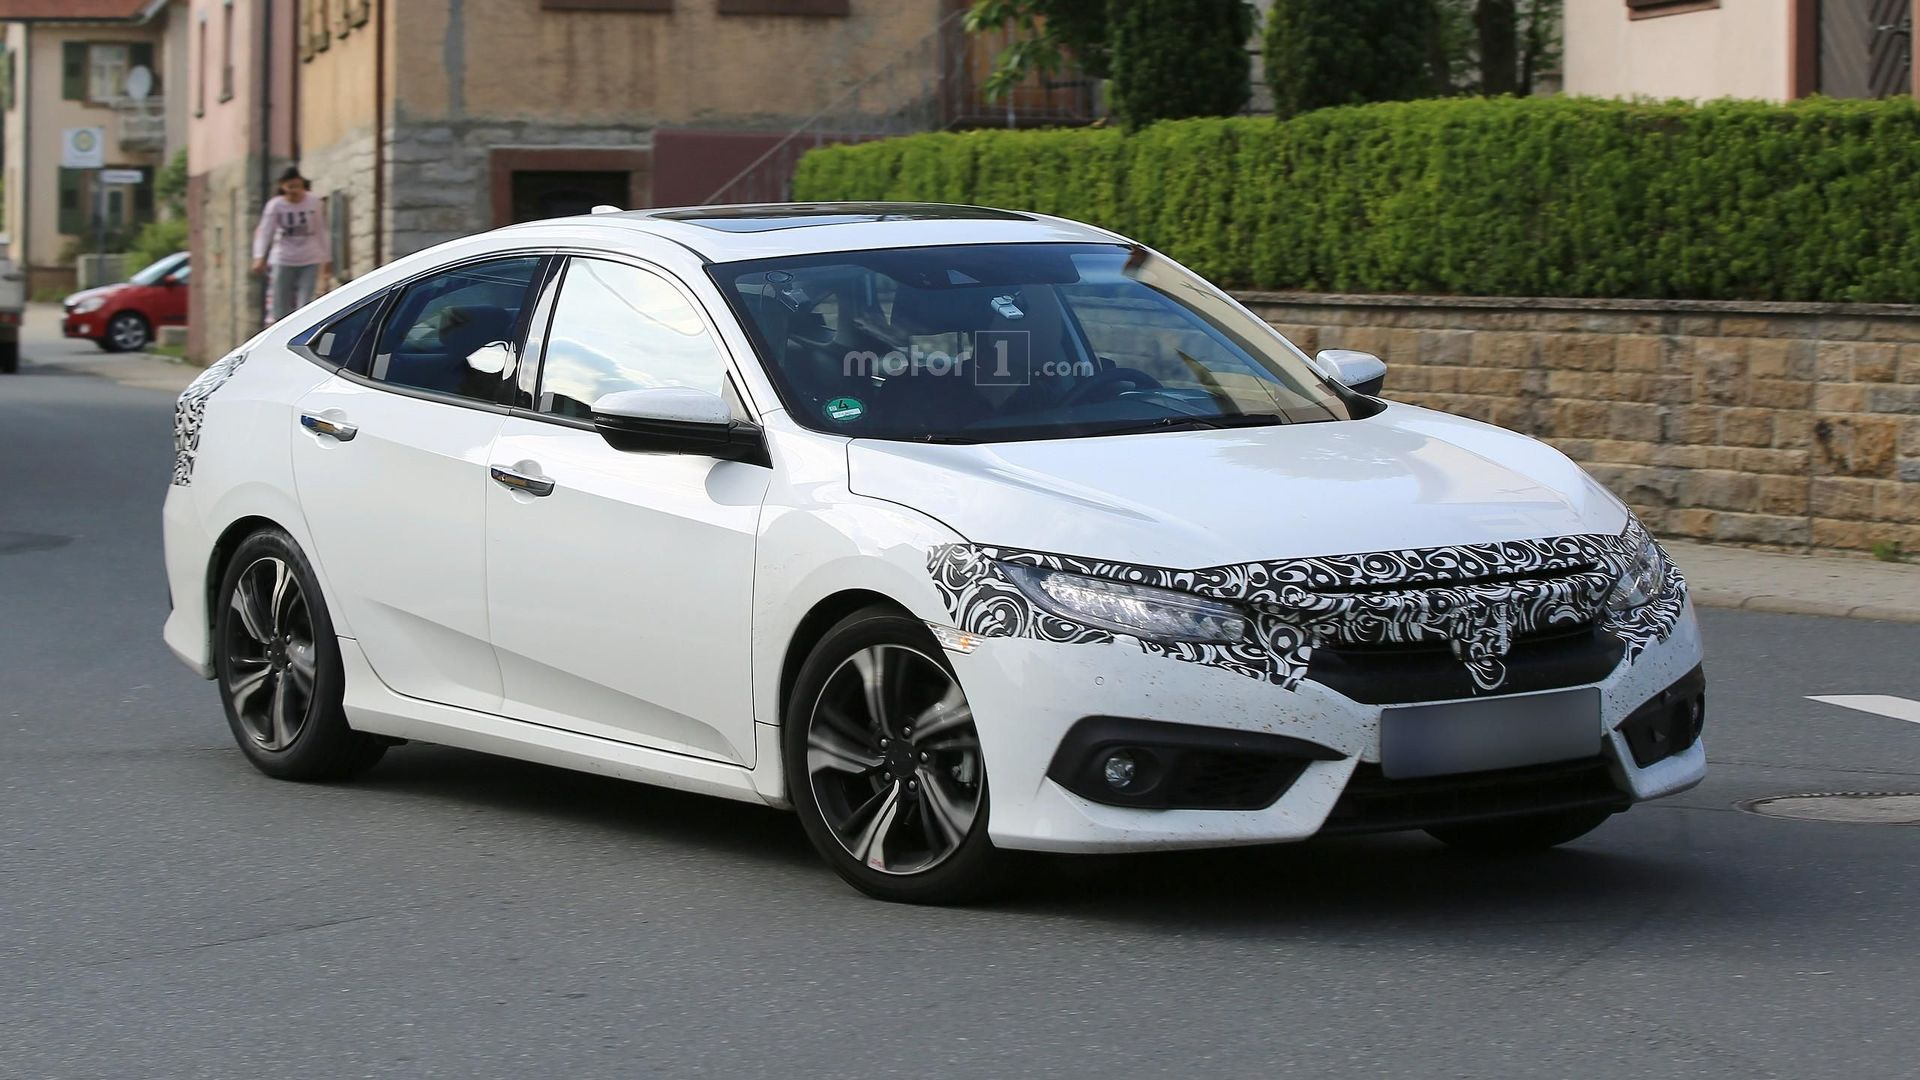 2018 Honda Civic Sedan photo - 1